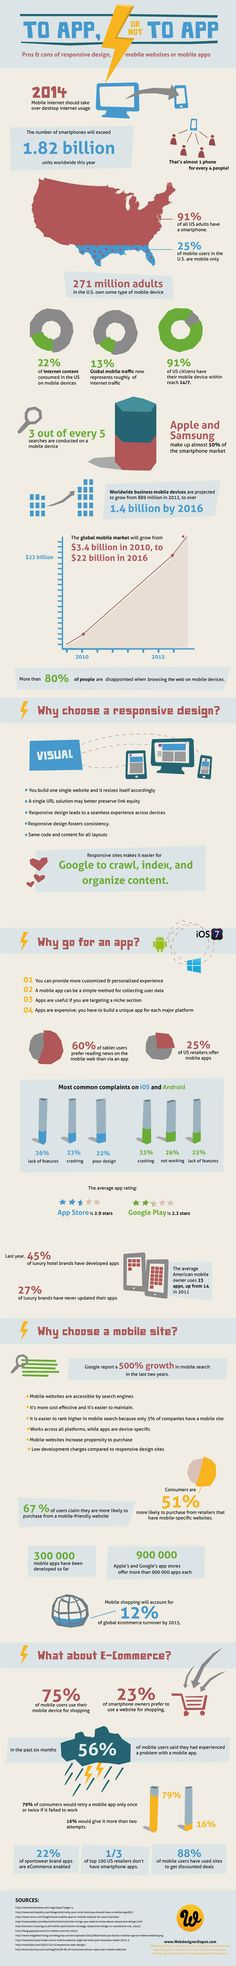 To App, or Not to App - Pros & cons of responsive design, mobile websites or mobile apps #infographics